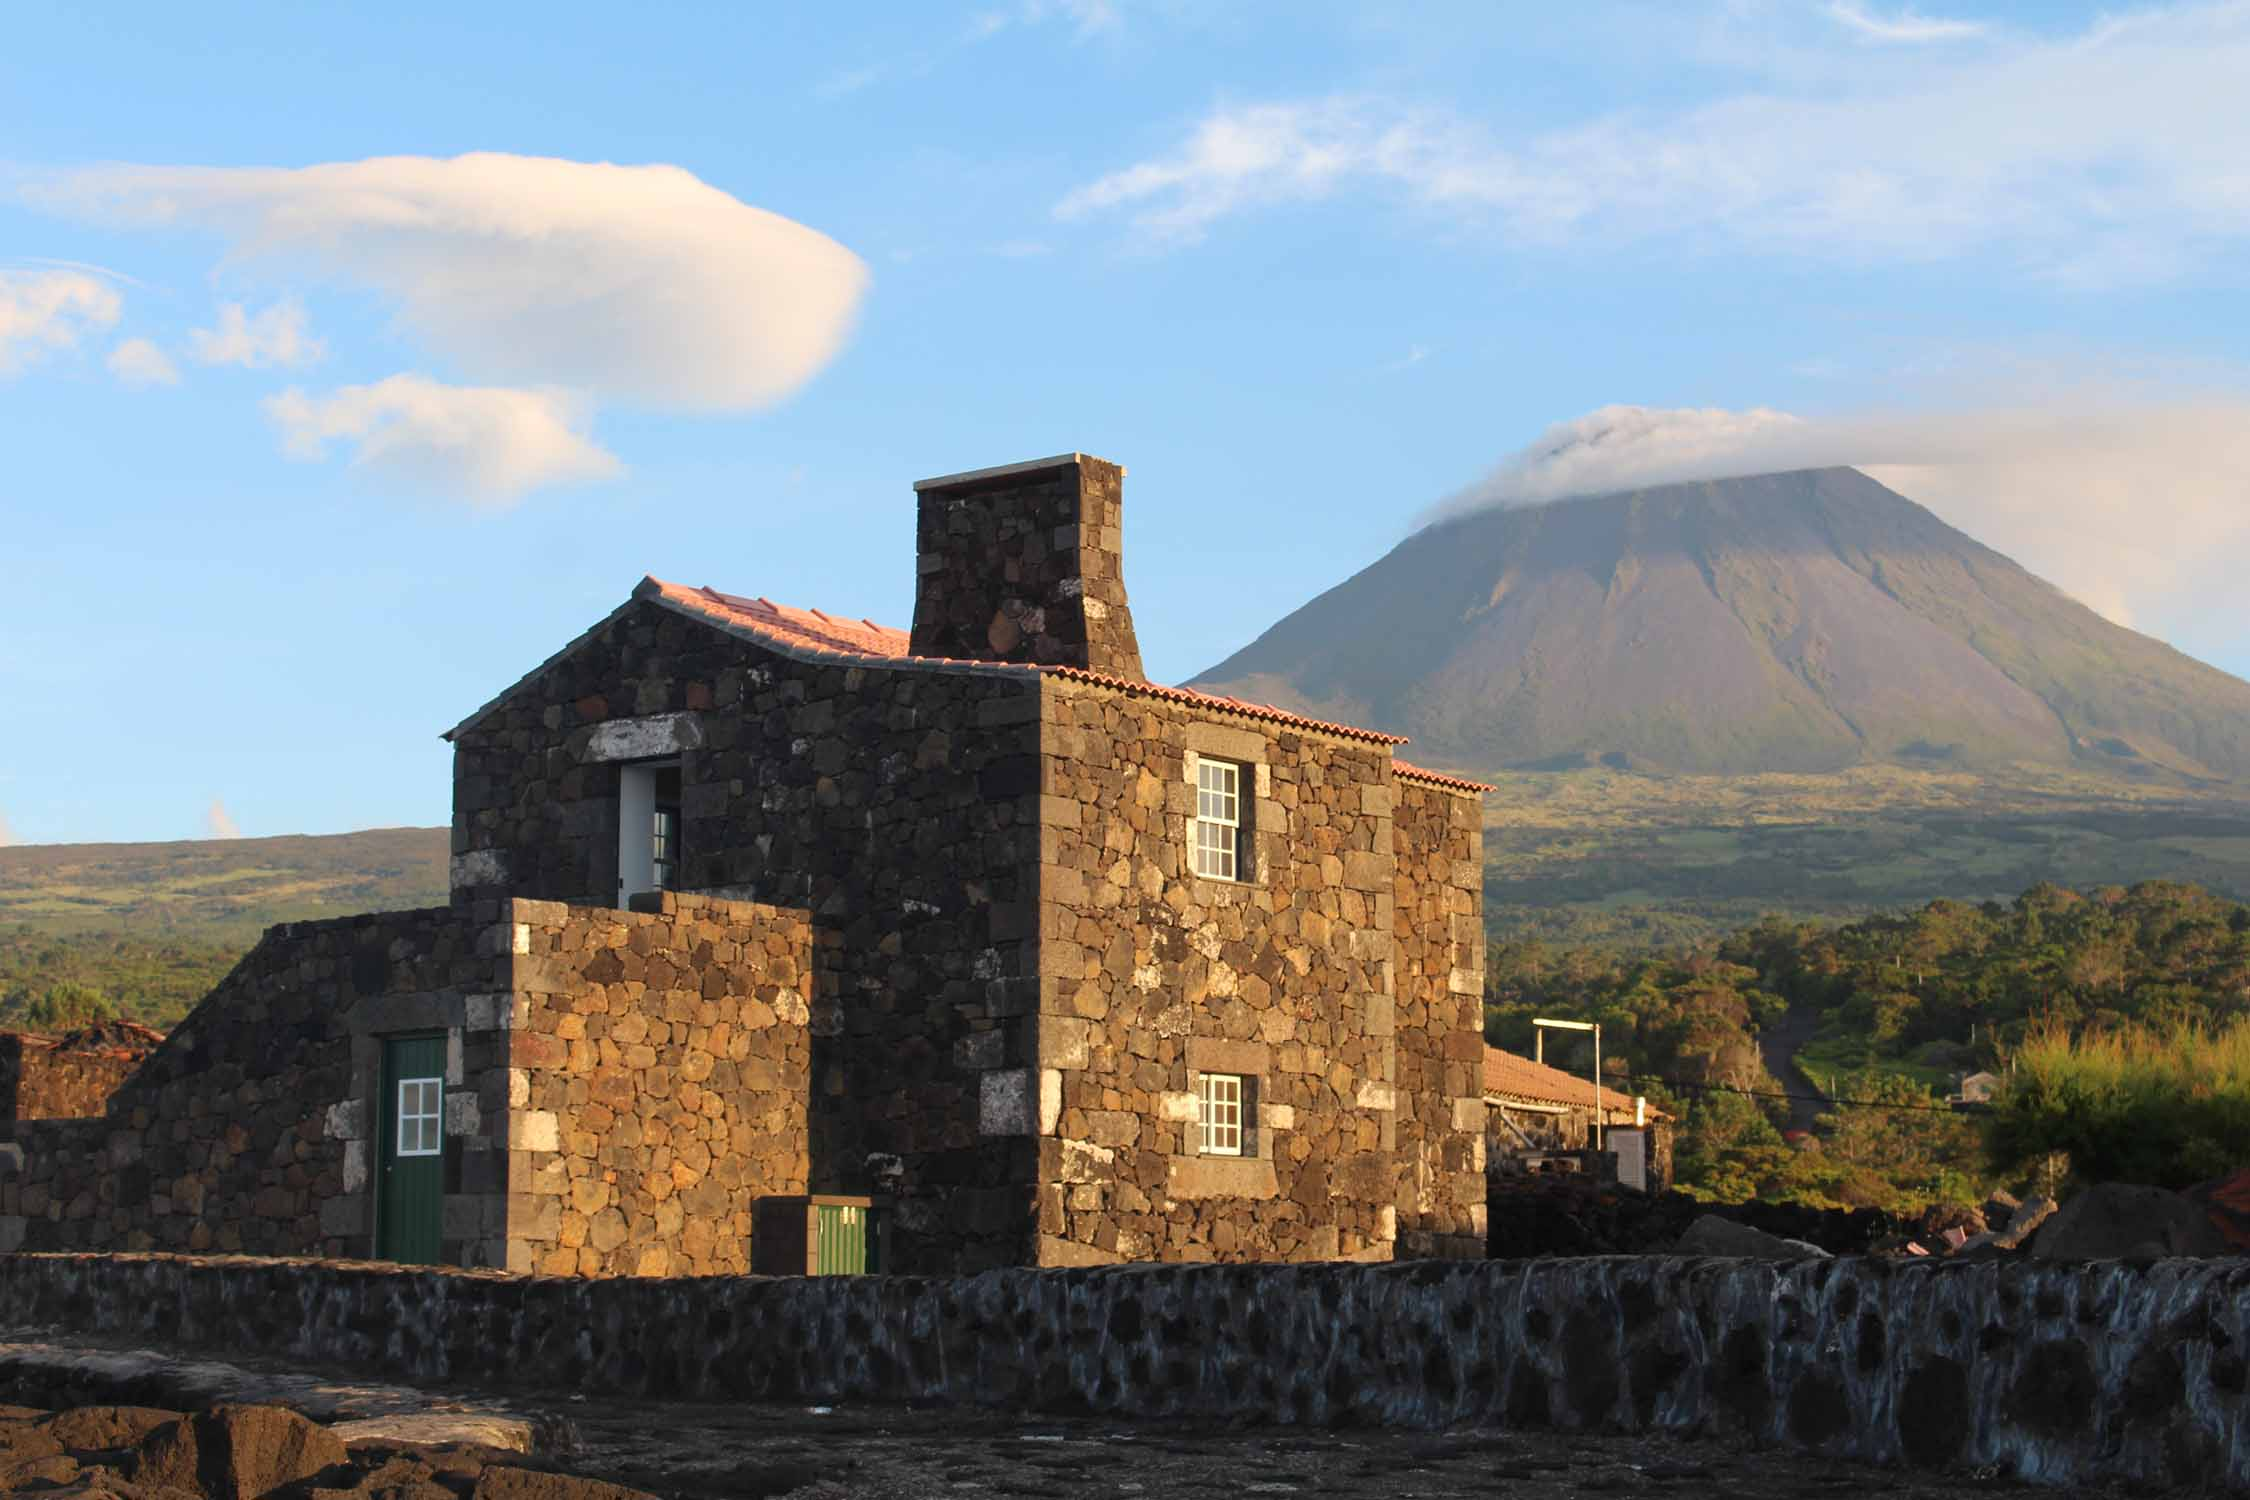 Typical house and the volcano of Pico, Azores